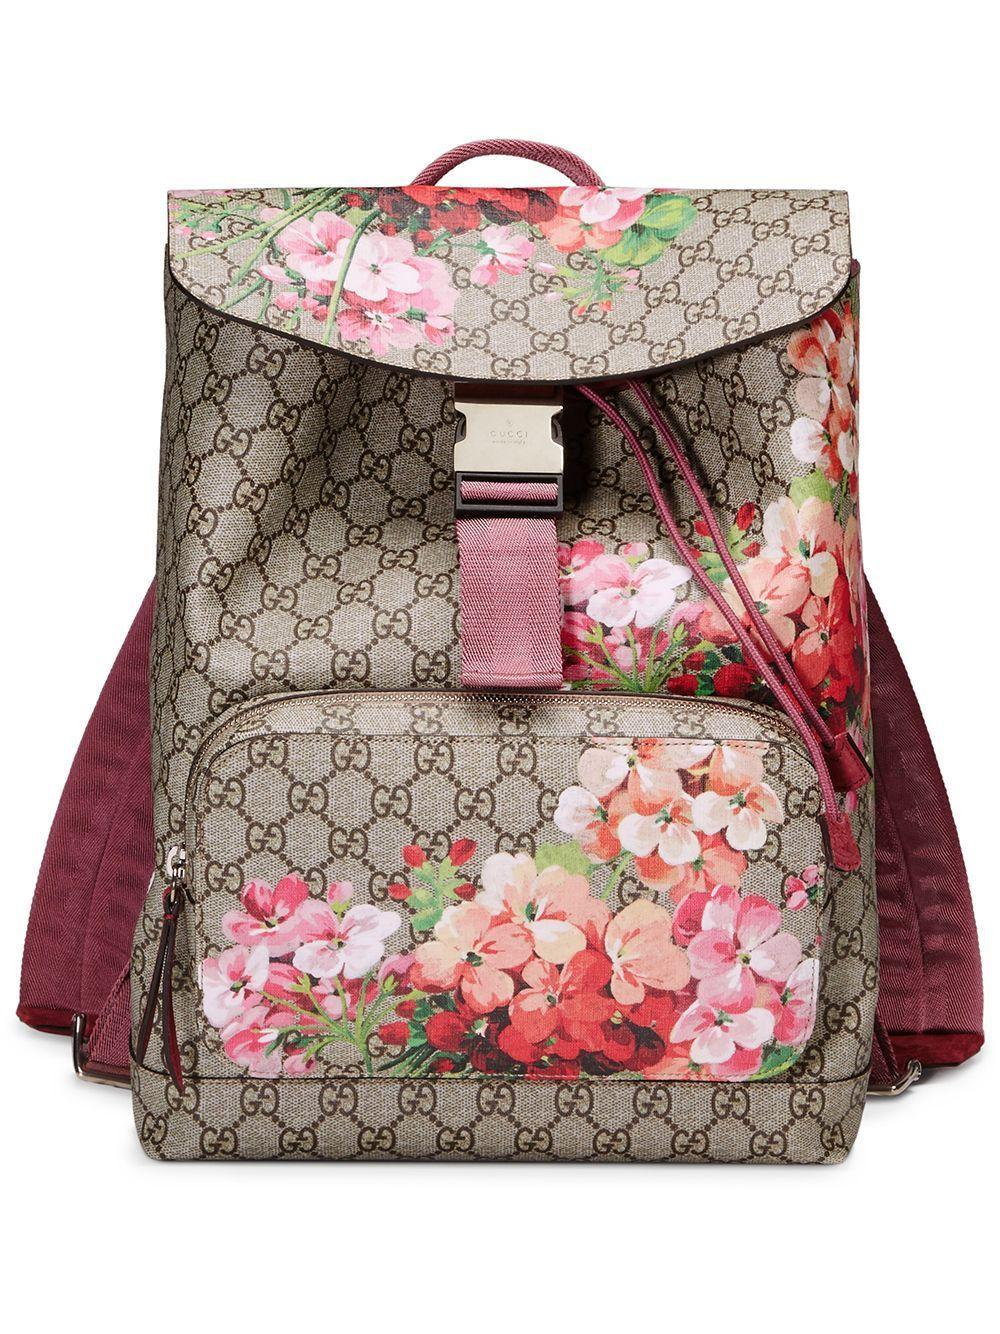 5e55aee6acb Gucci GG Blooms Backpack - Save 31% - Lyst